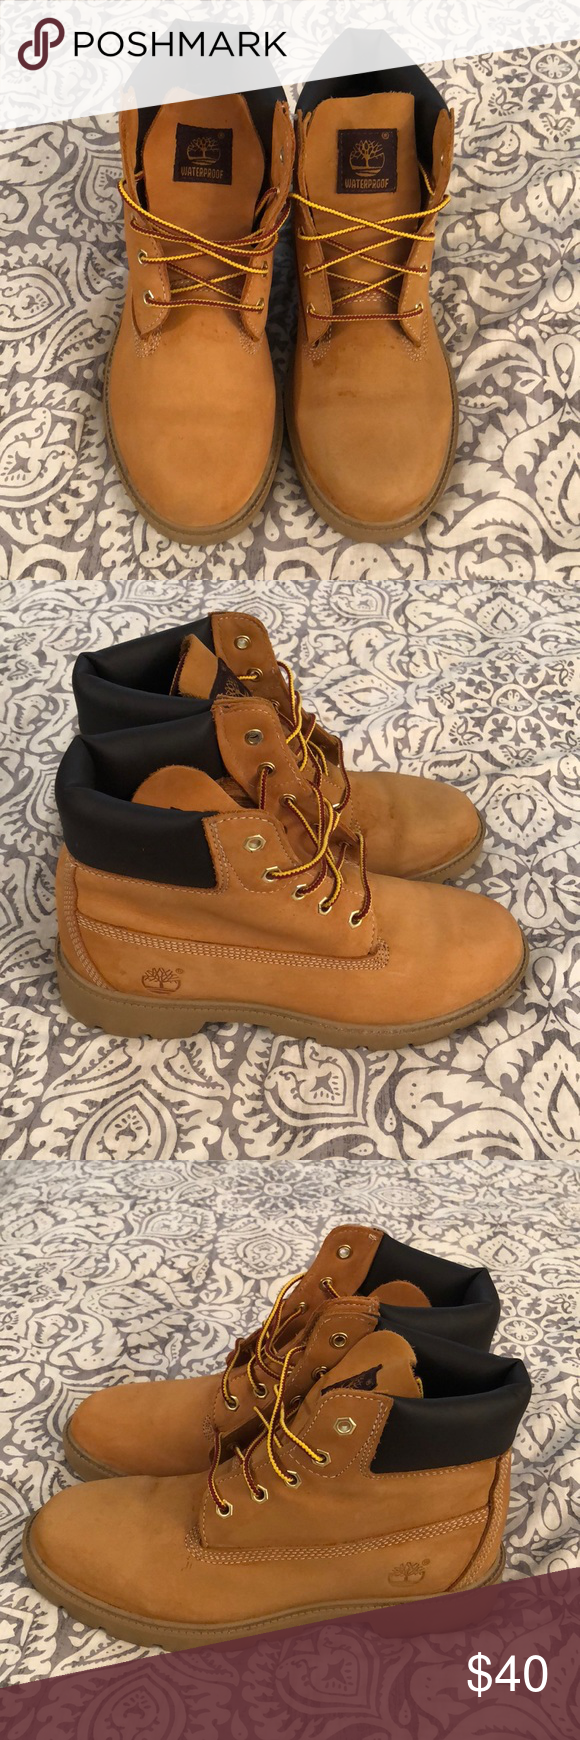 Timberland Boots Size 5 Timberland boots, Youth Boys size 5